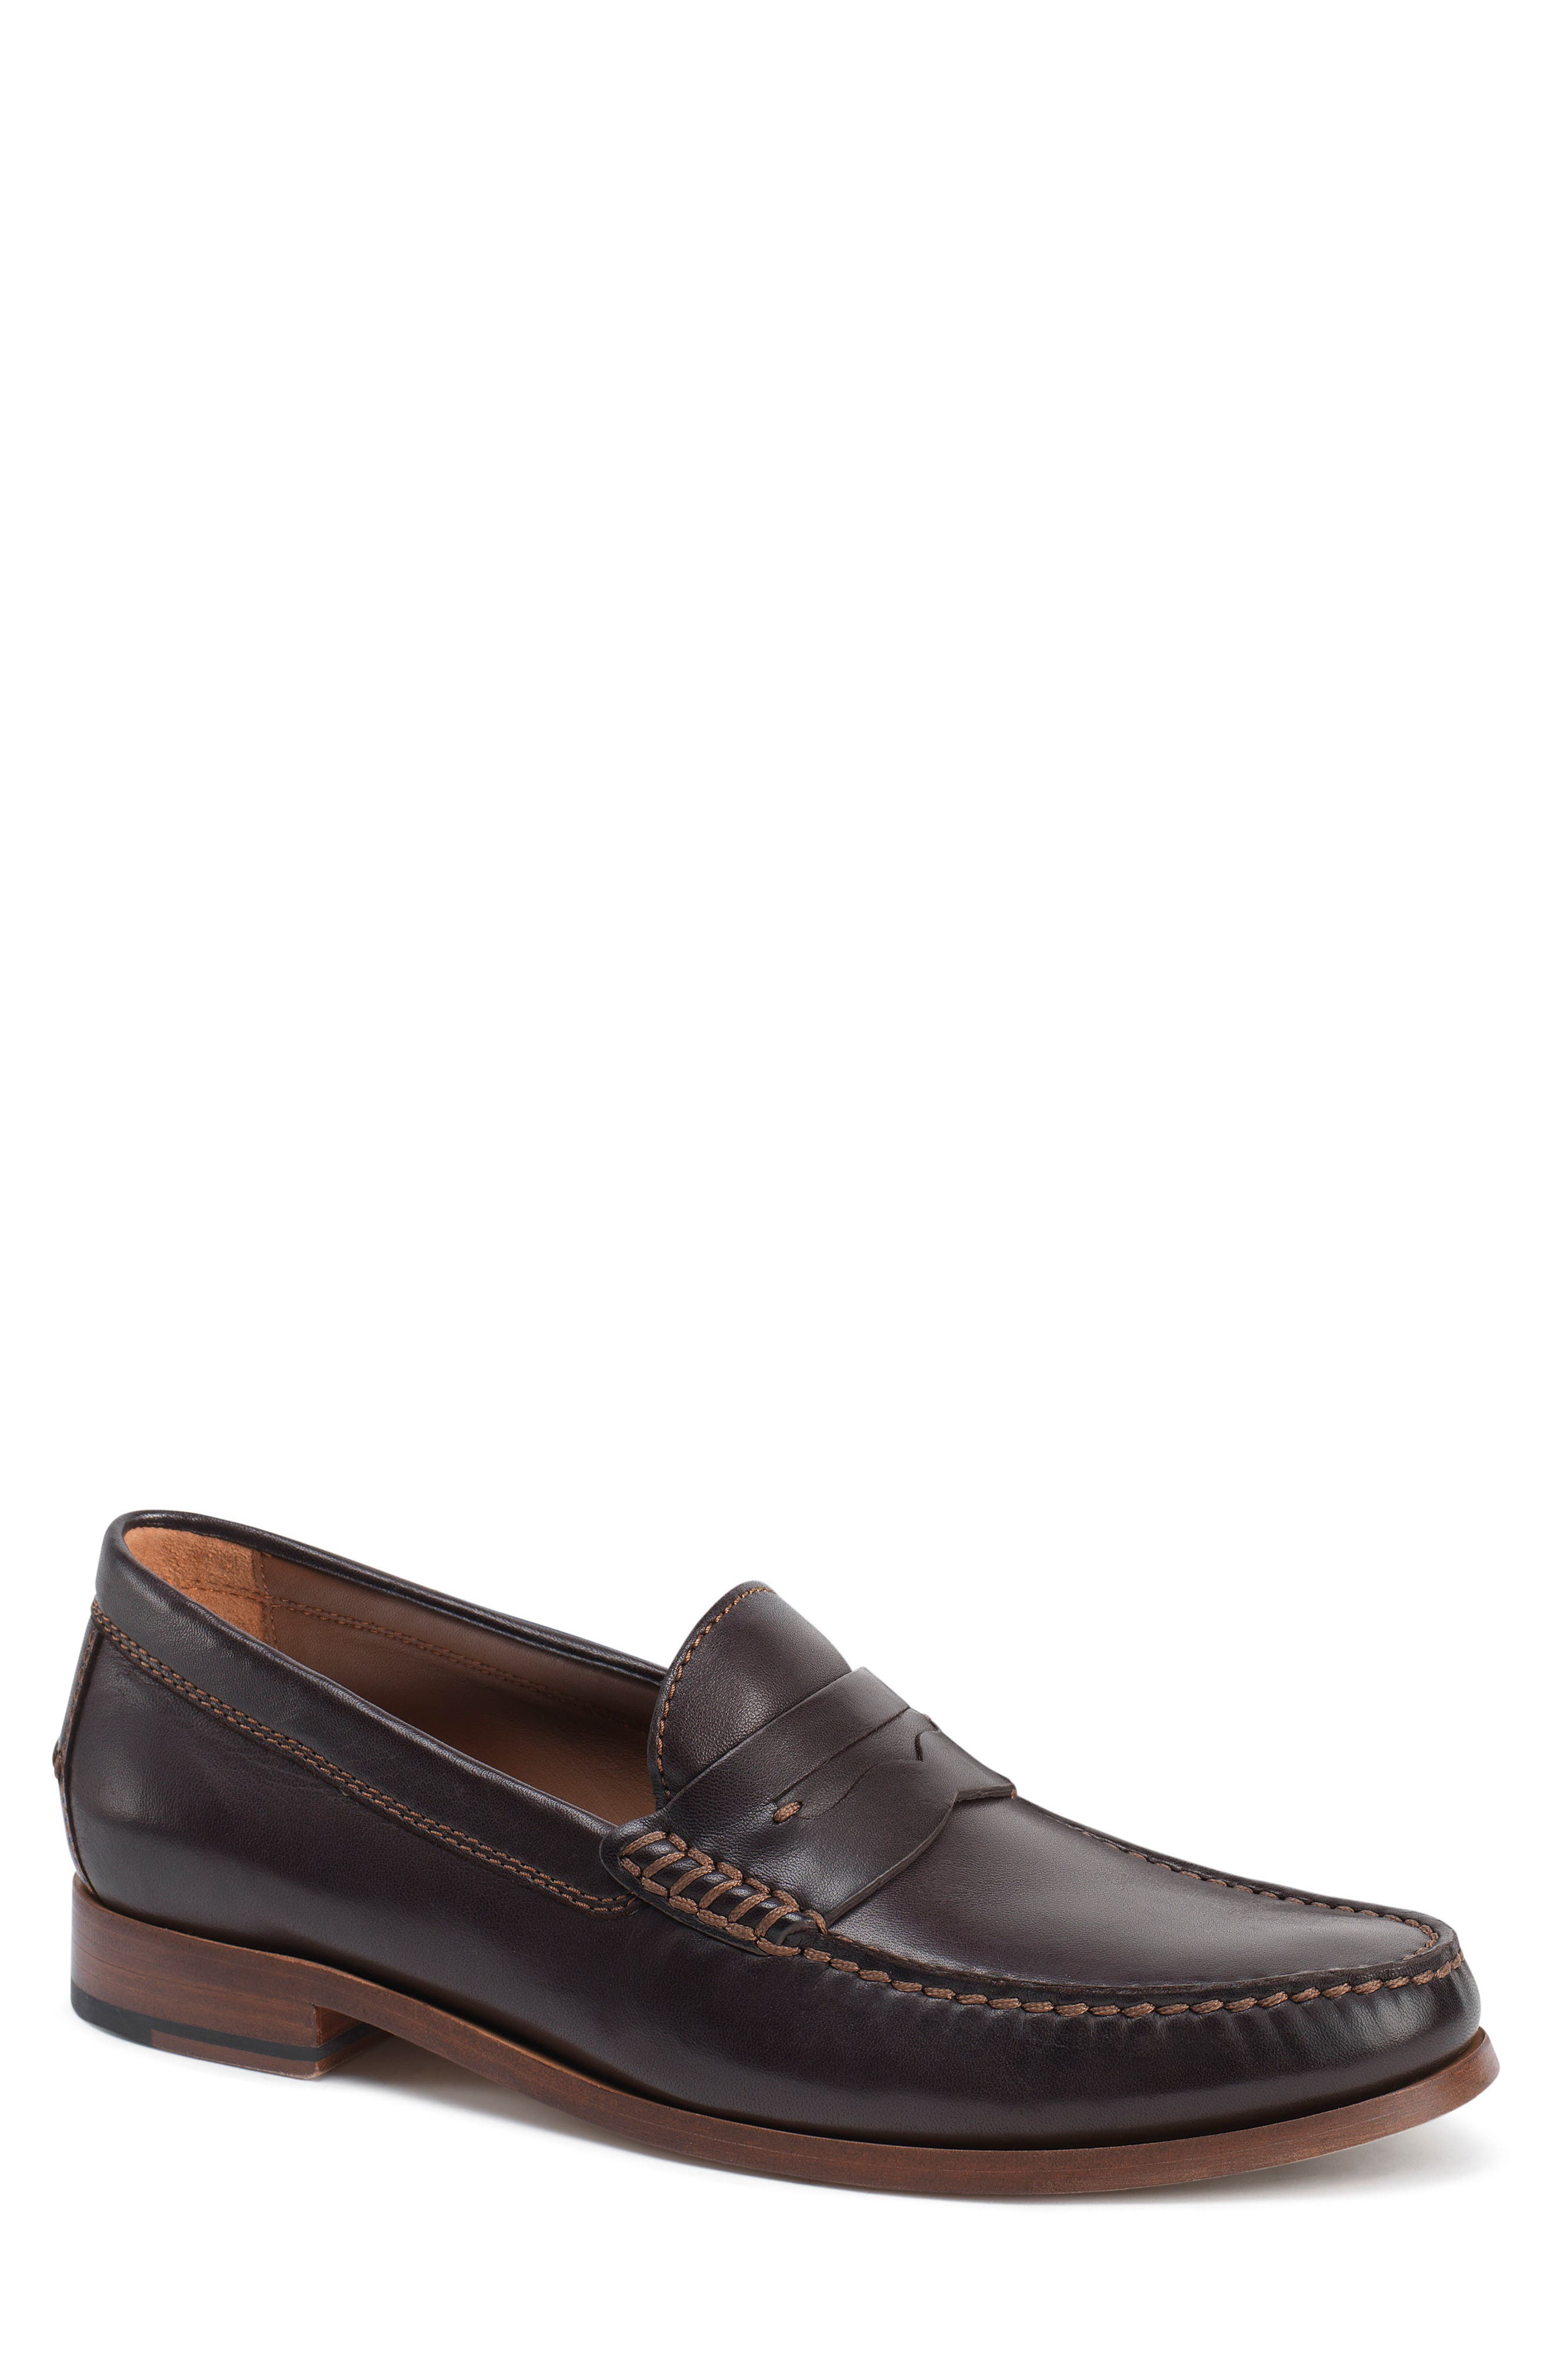 Trask 'Sadler' Penny Loafer (Men)